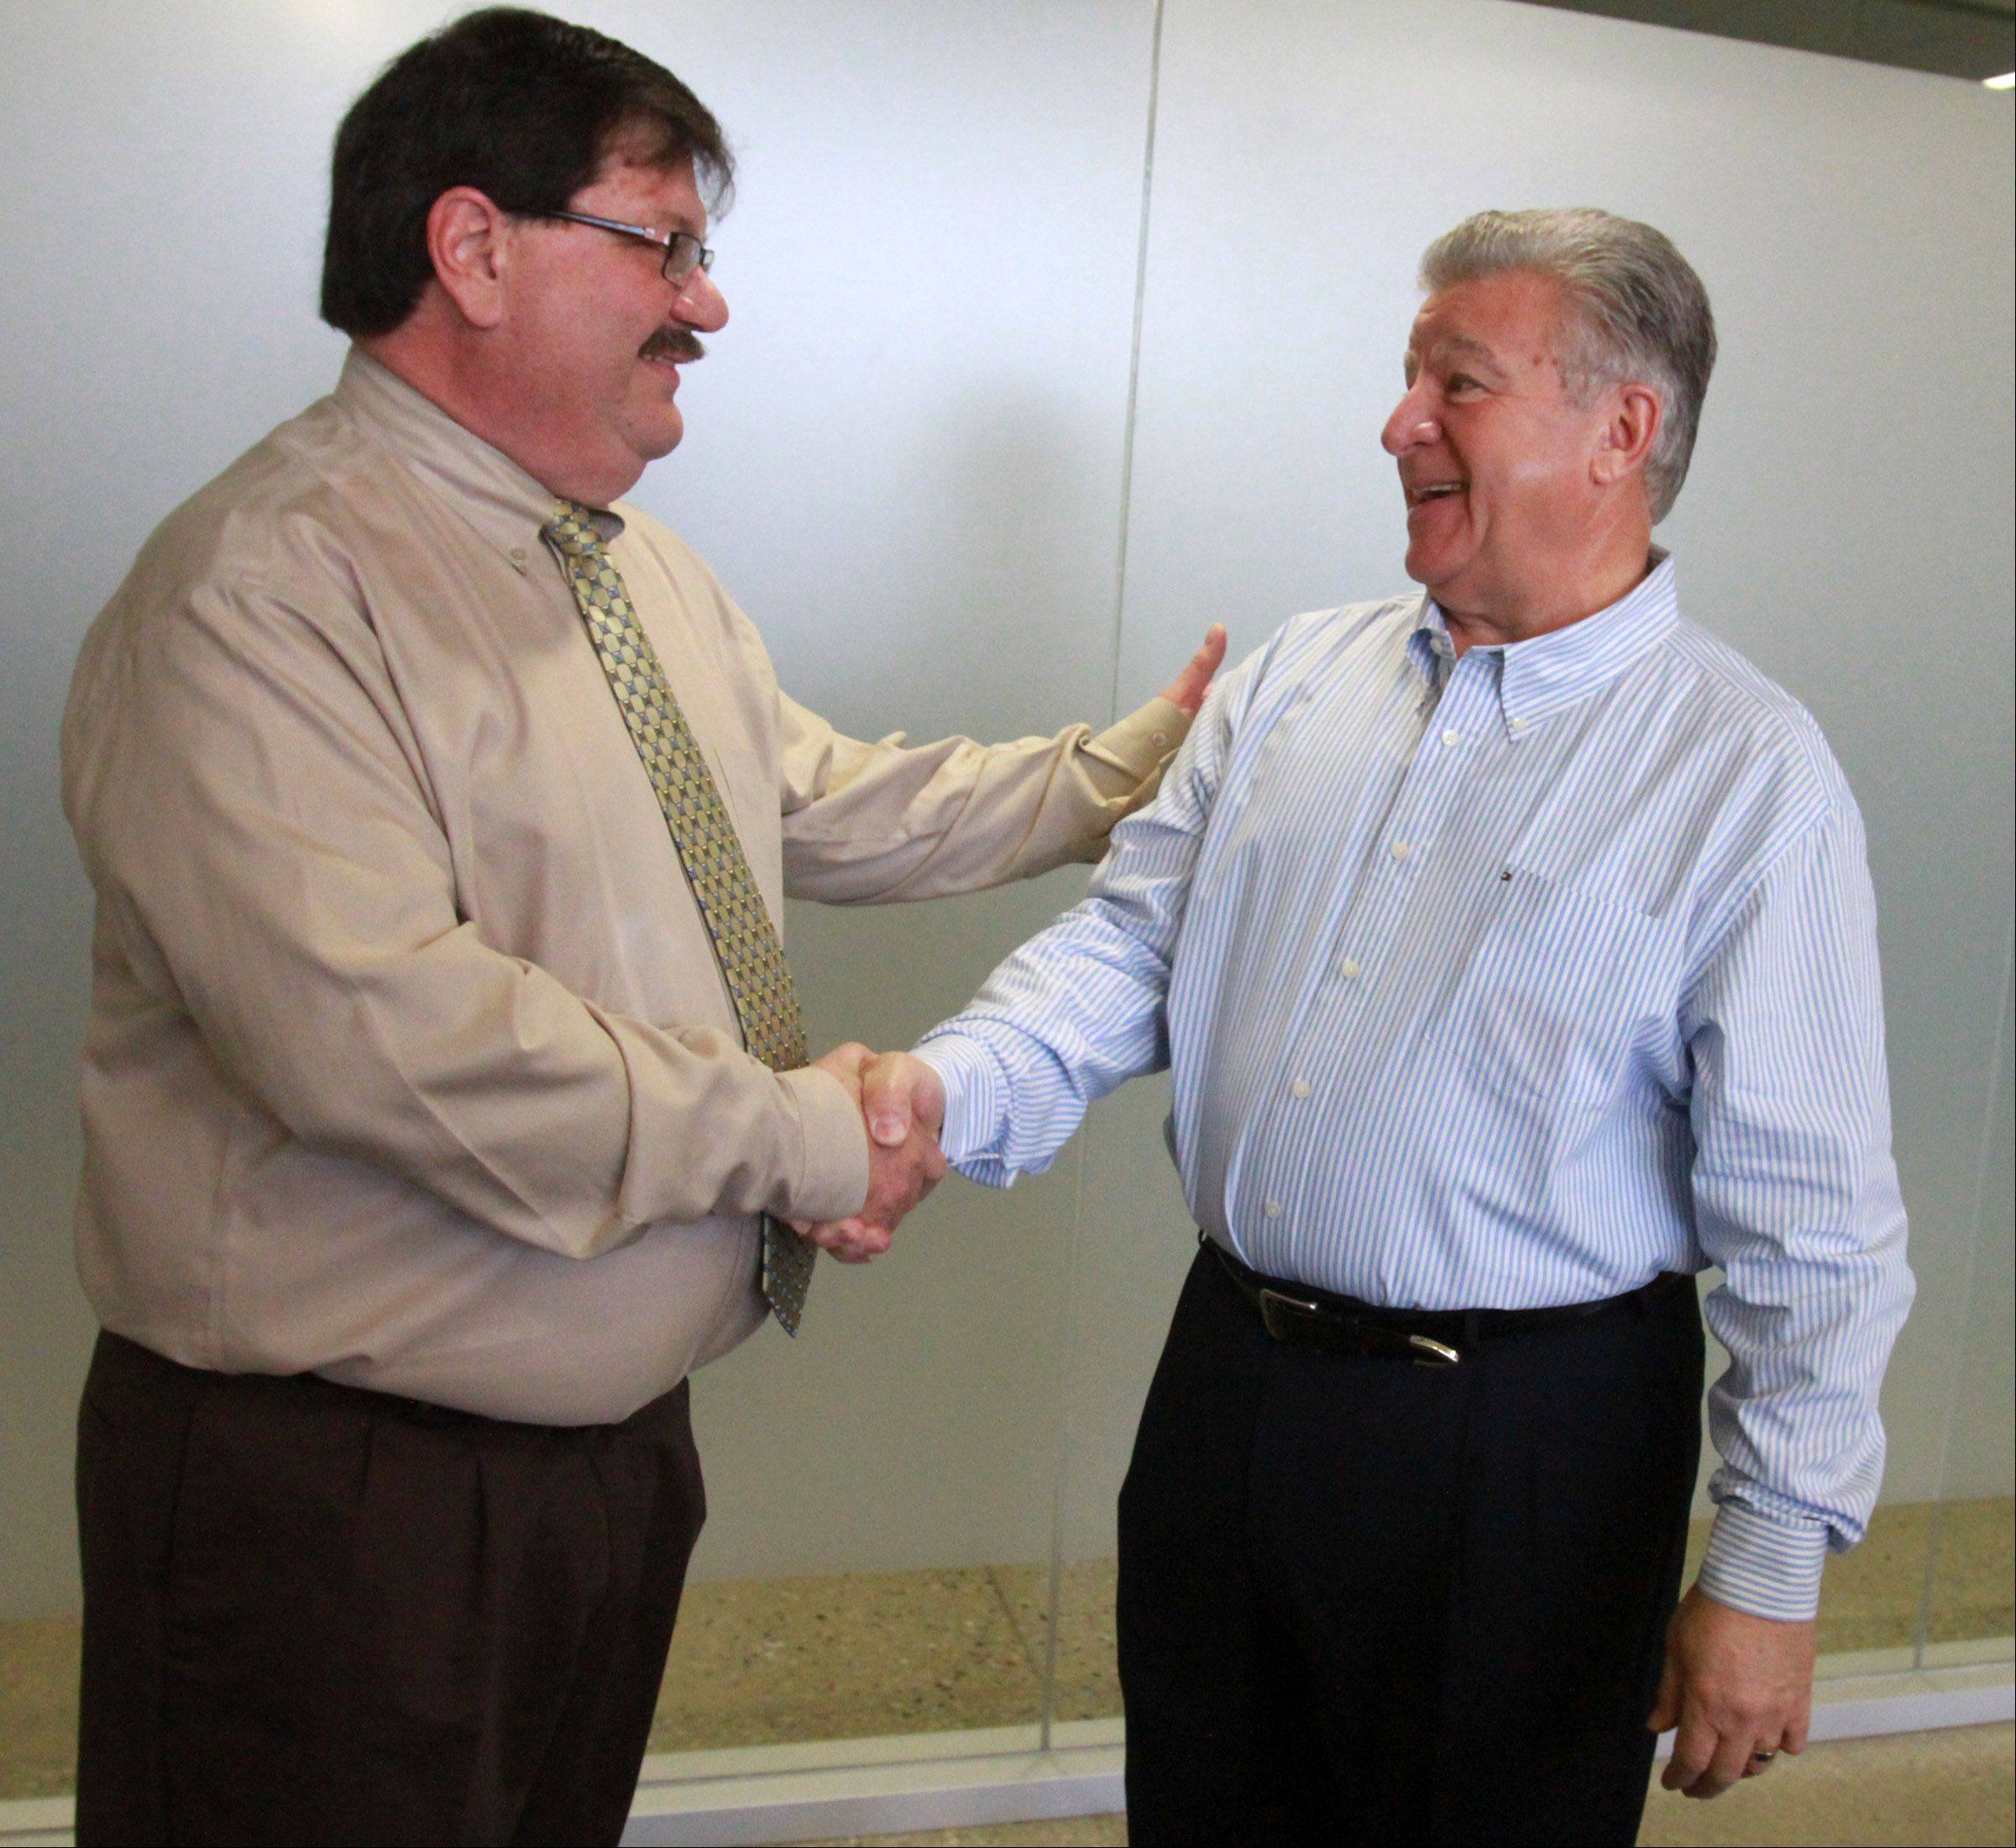 Hanover Park Mayor Rod Craig, left, gets a congratulatory handshake from Carol Stream Village President Frank Saverino after the two weighed in Tuesday morning at the Hanover Park police station community room.